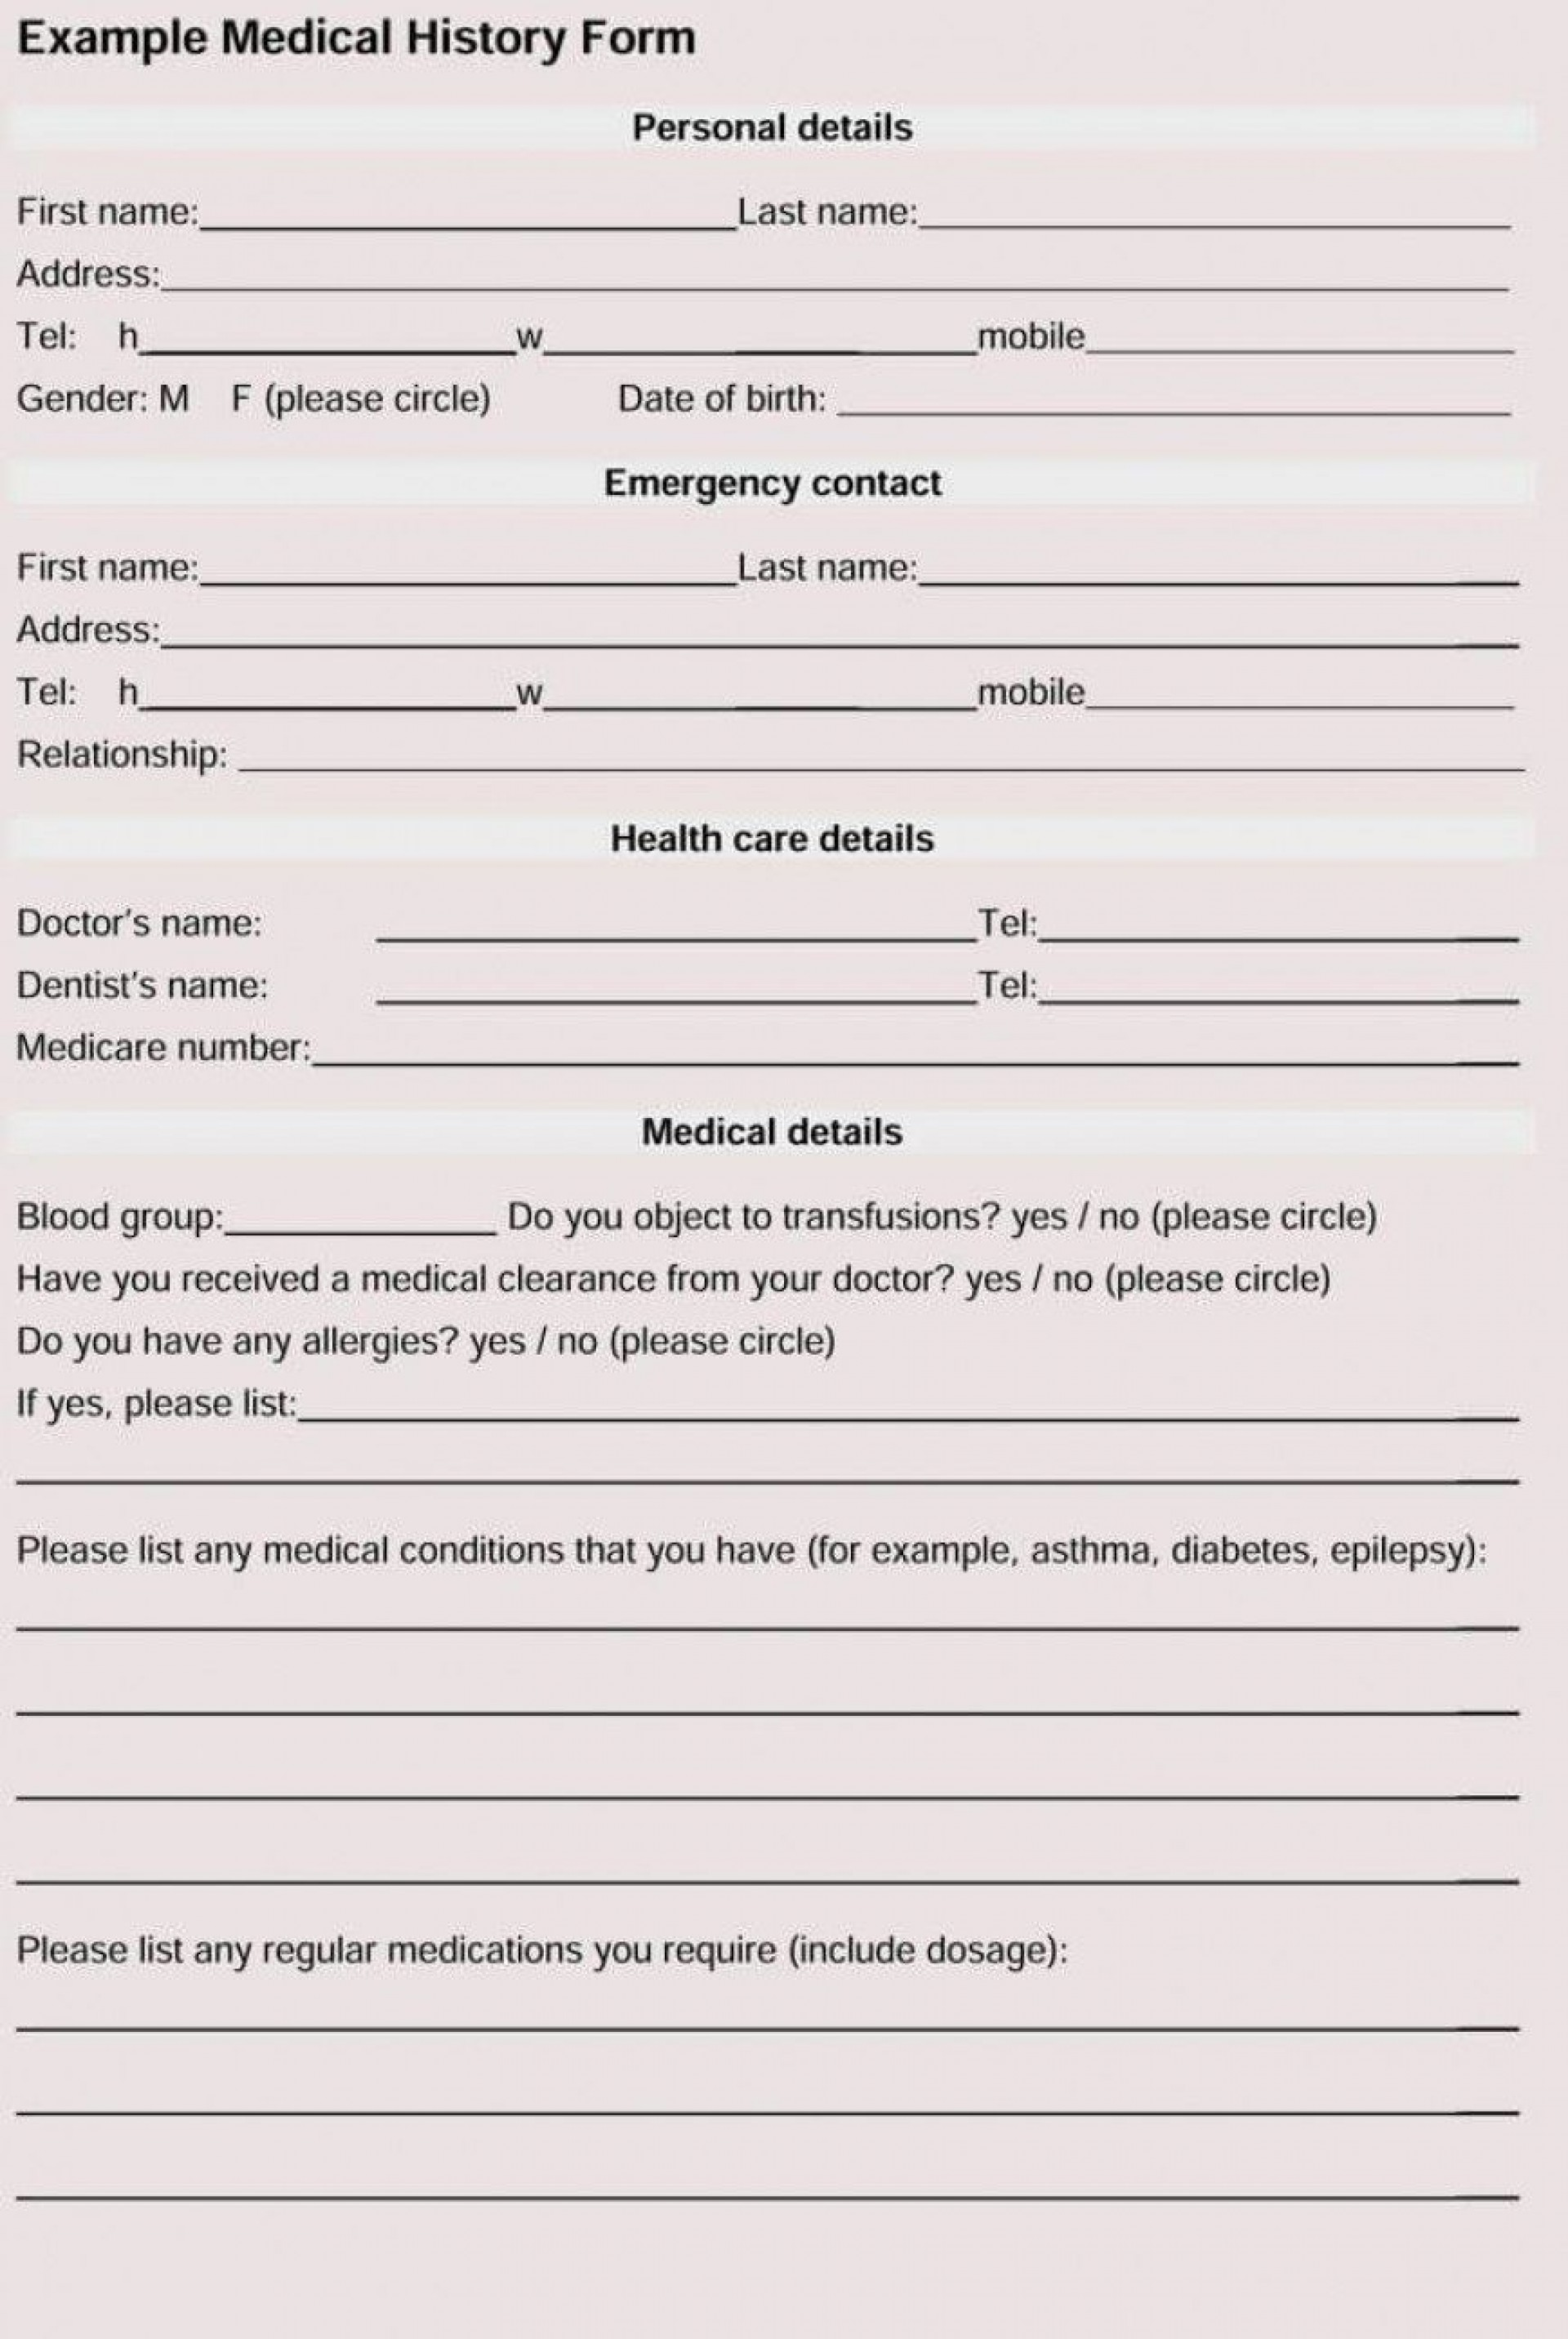 005 Fantastic Family Medical History Template Free High Def  Questionnaire1920